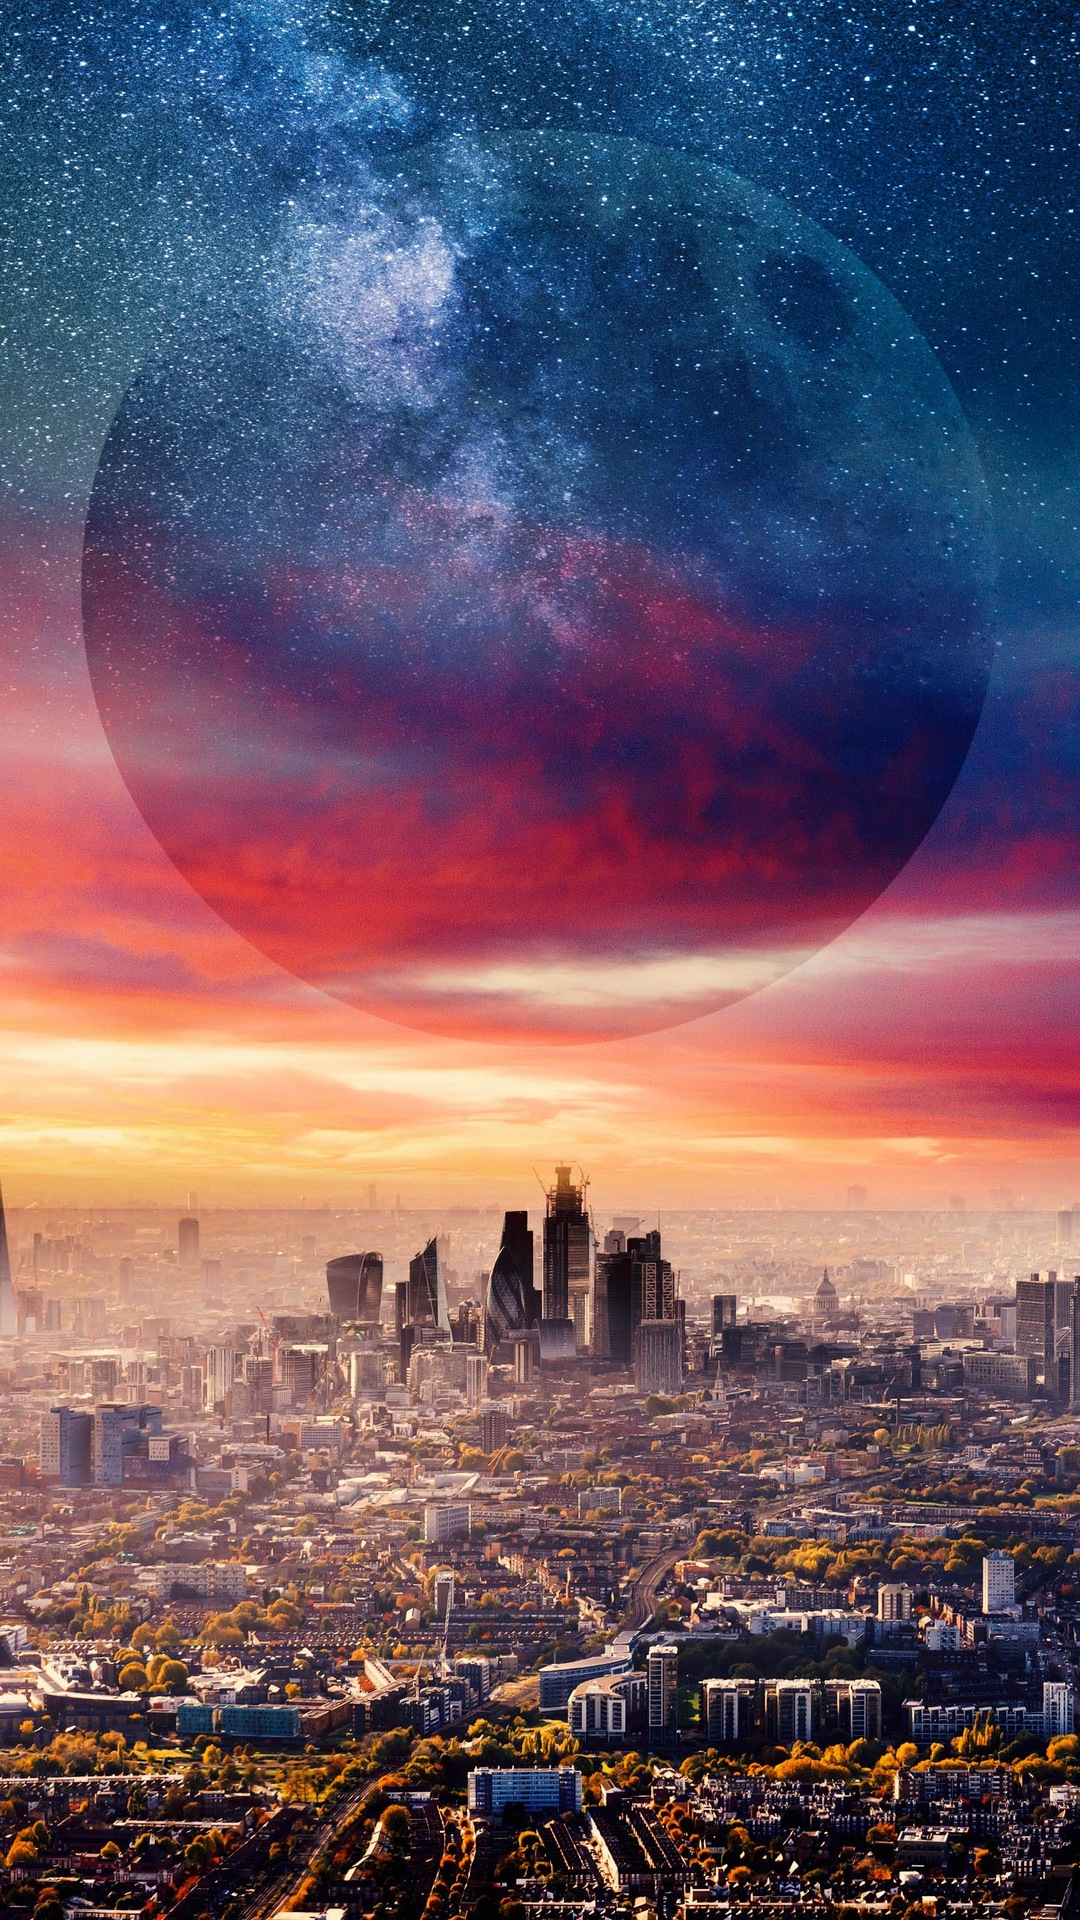 unnamed-planet-l3.jpg